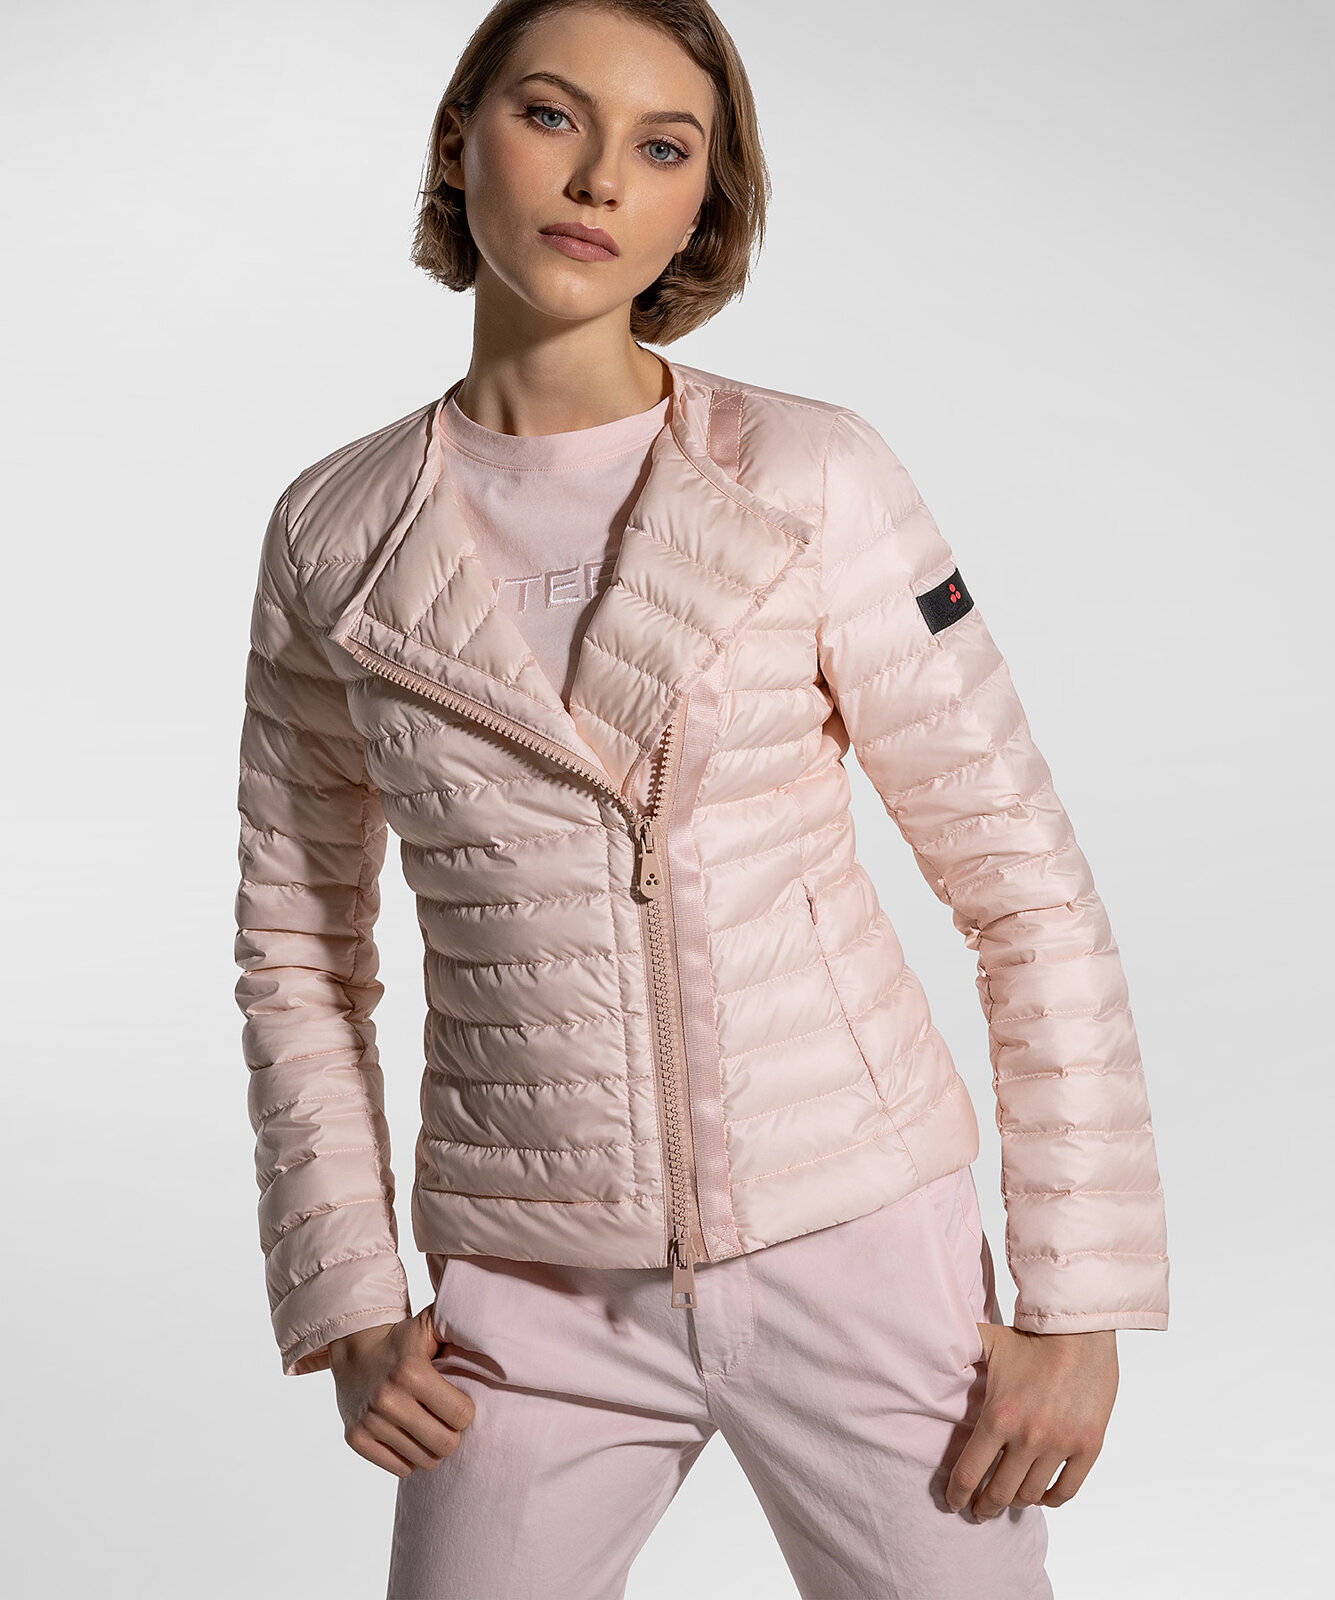 Slim Fit And Superlight Down Jacket - Peuterey